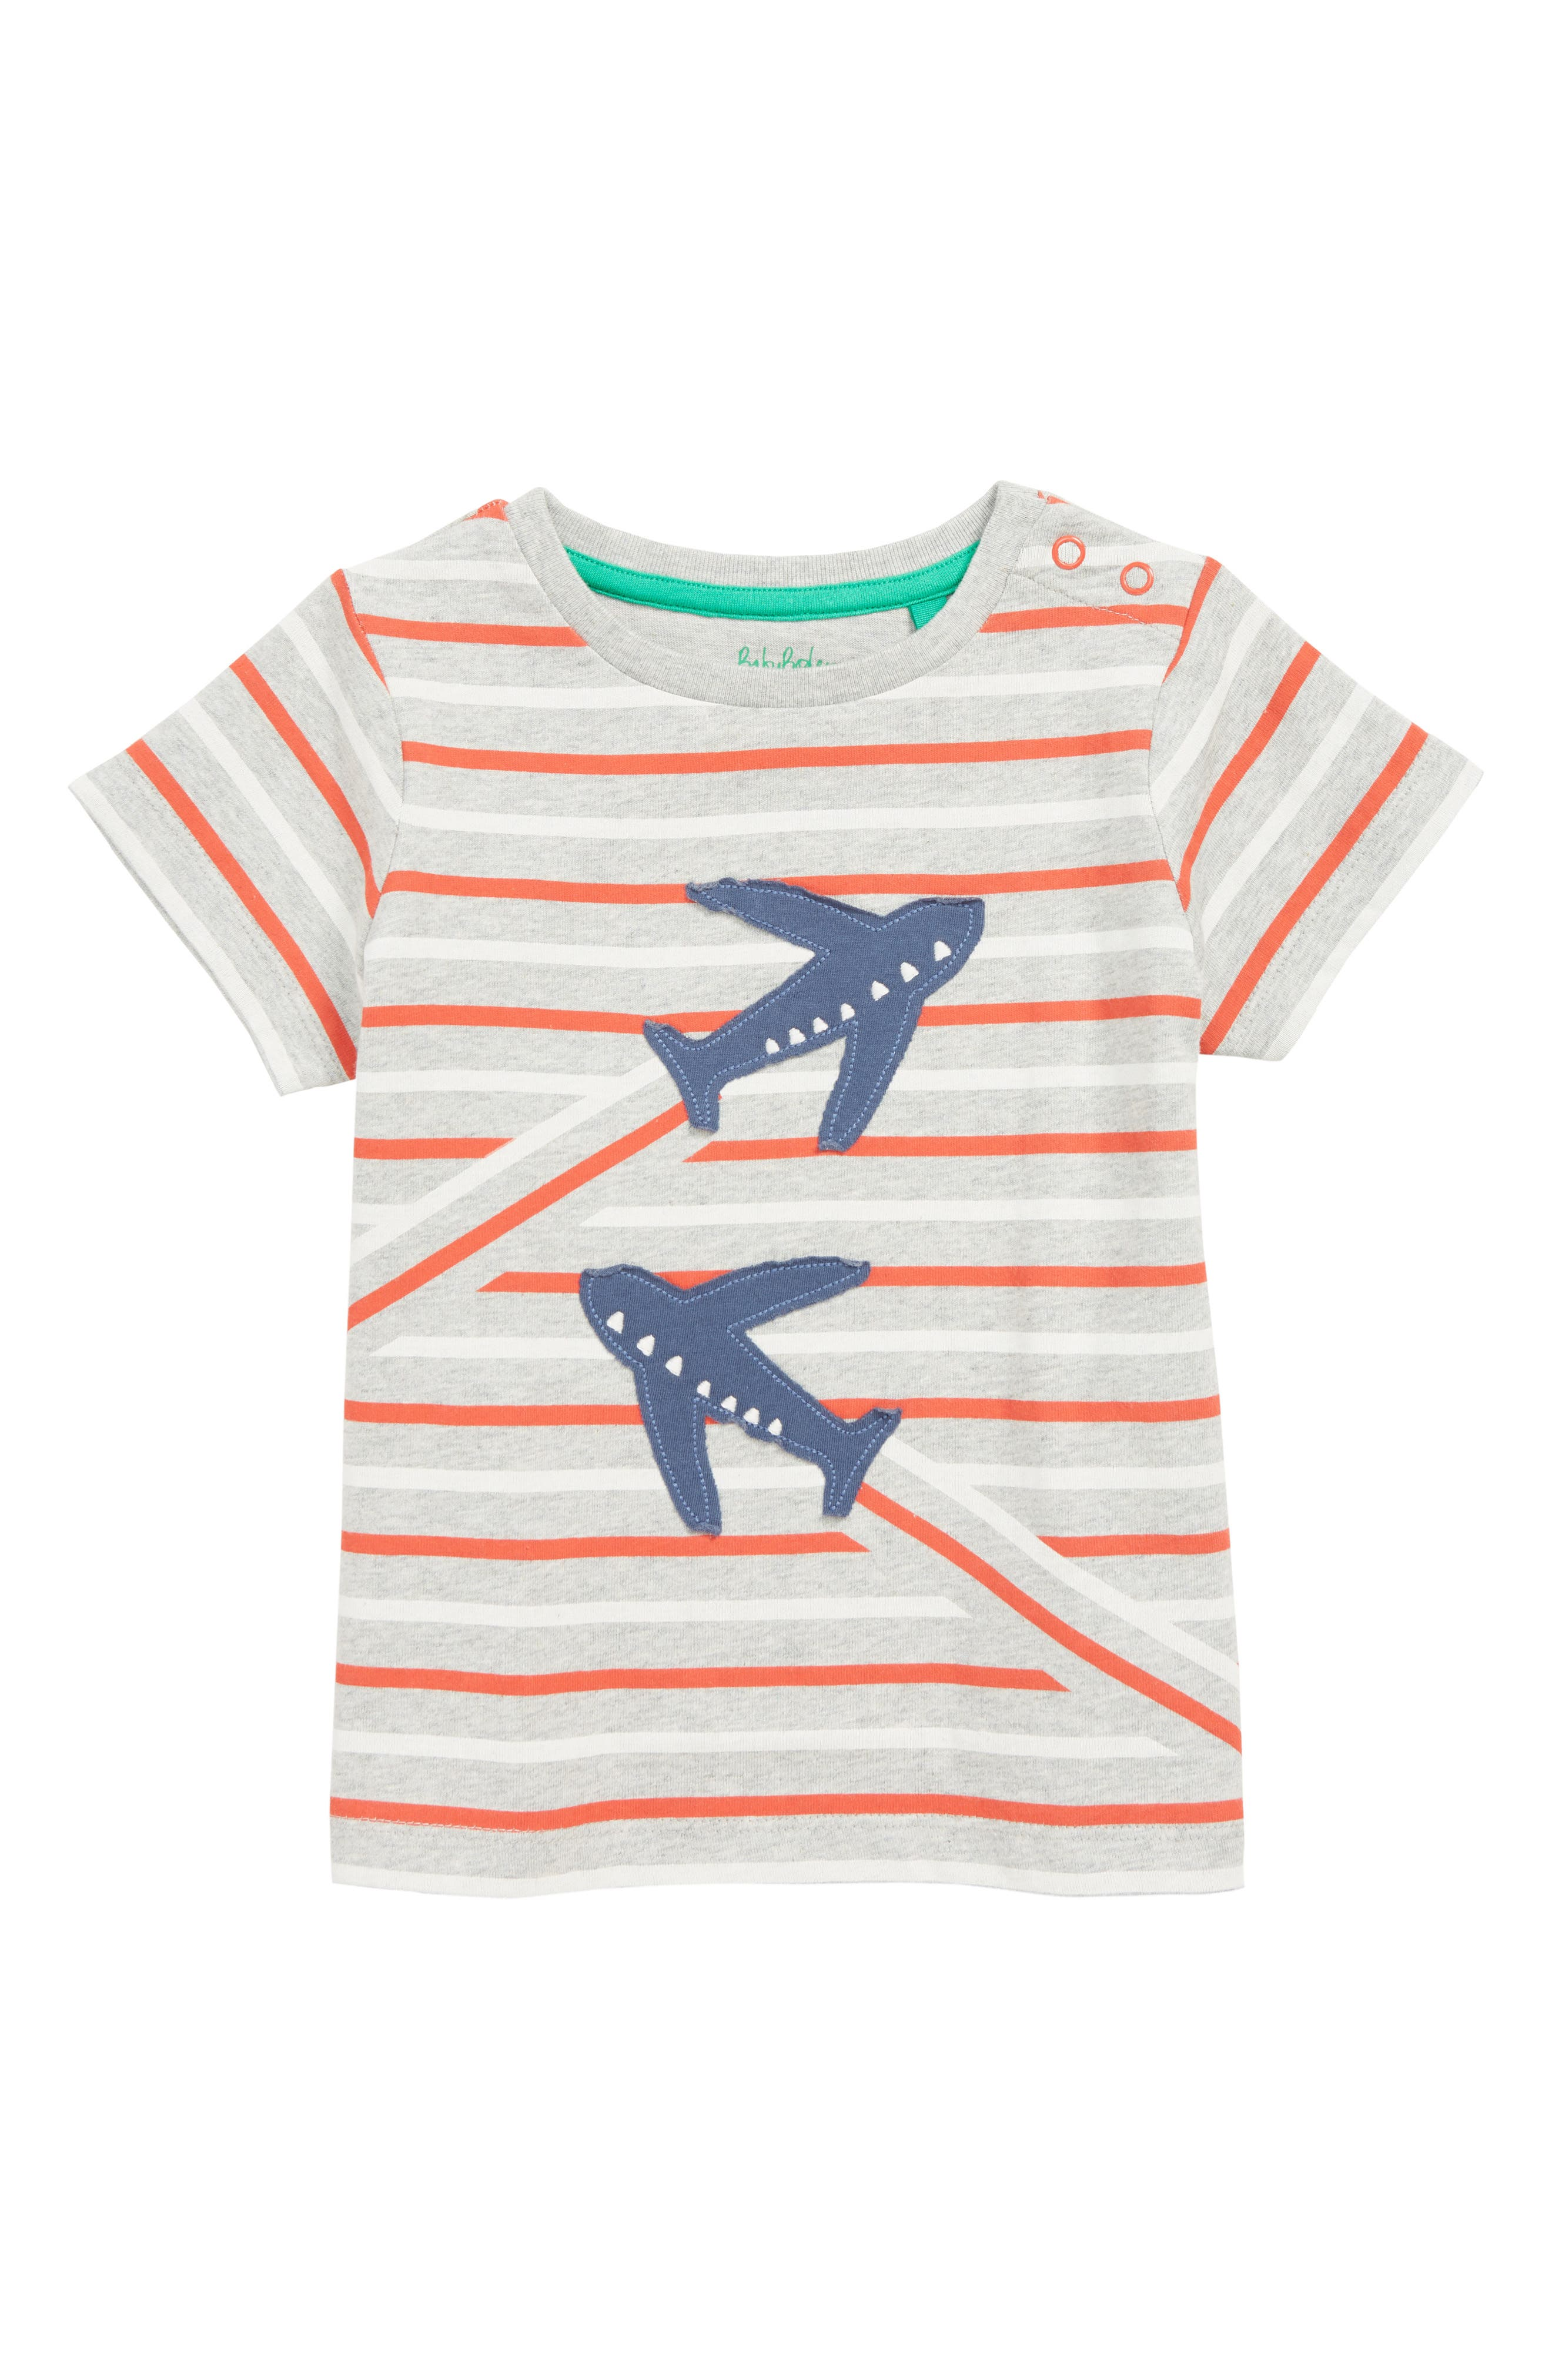 MINI BODEN Transport T-Shirt, Main, color, GRY GREY MARL/ BEAM RED PLANE